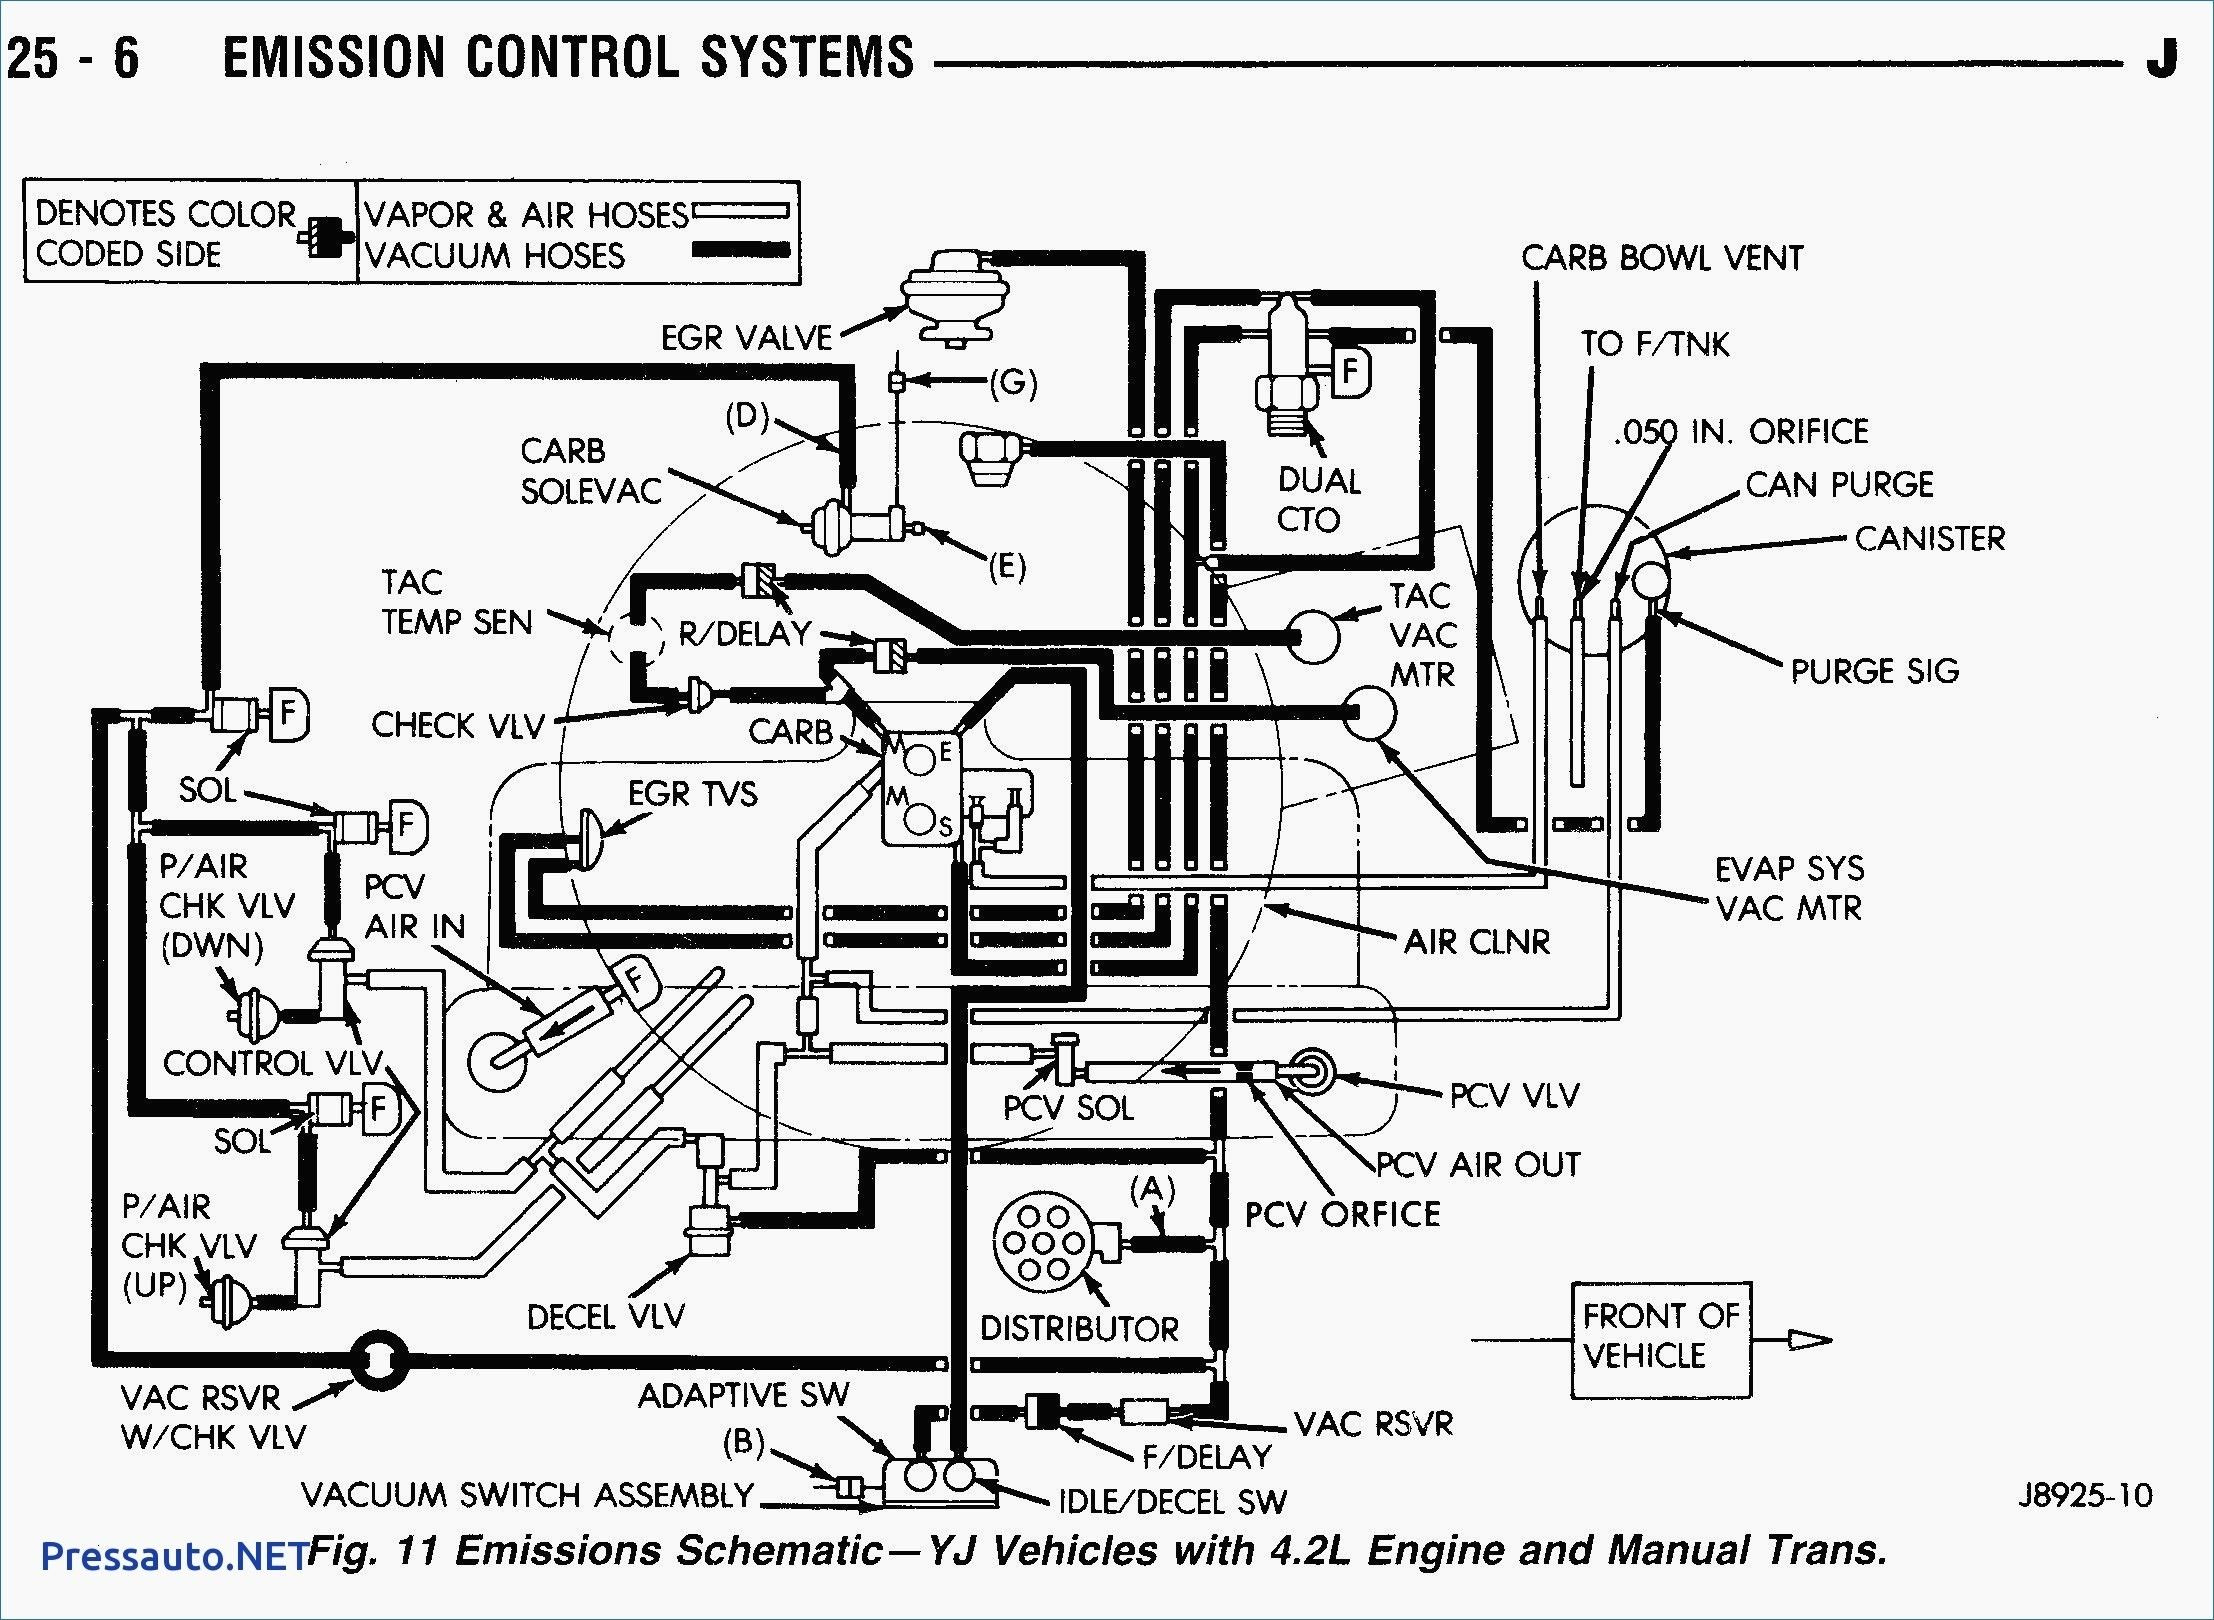 medium resolution of wiring diagram 1995 jeep yj 2 5l wiring diagram img 1995 jeep wrangler 2 5l engine wiring